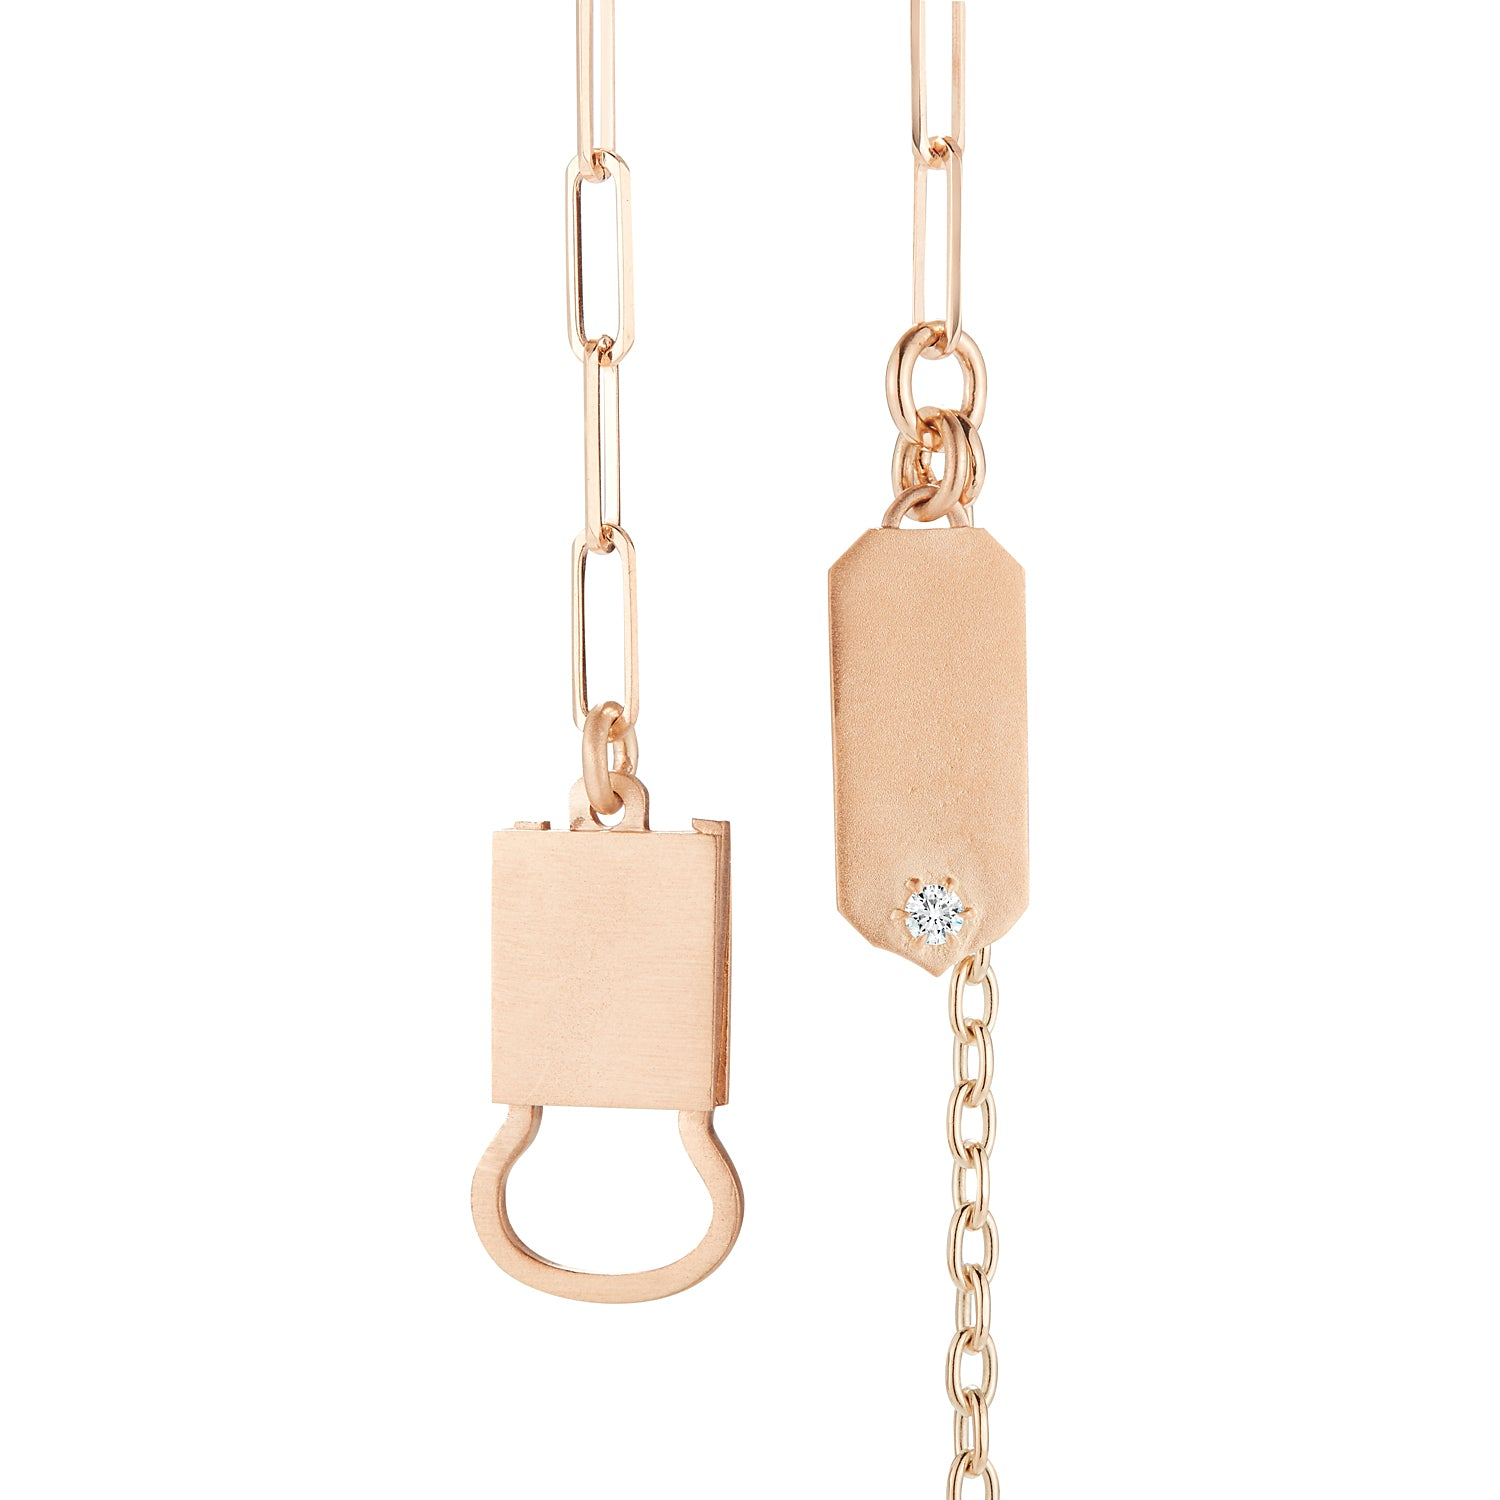 Jade Trau Betty Necklace in 18K Rose Gold